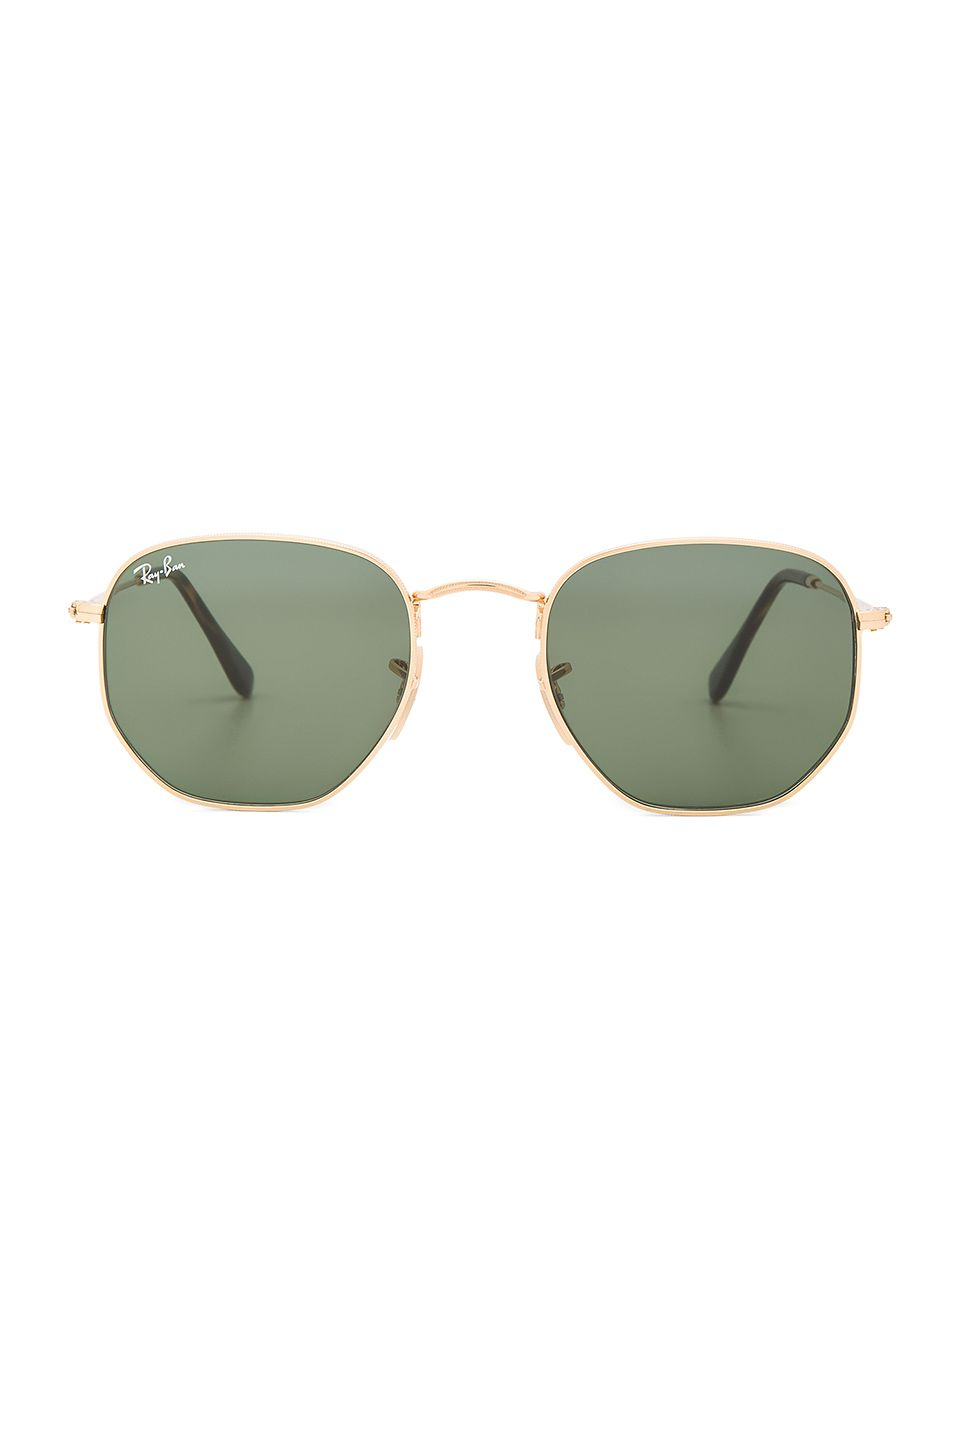 5e3f93fc91dce Ray-Ban Hexagonal Flat Lens in Gold   Silver Flash